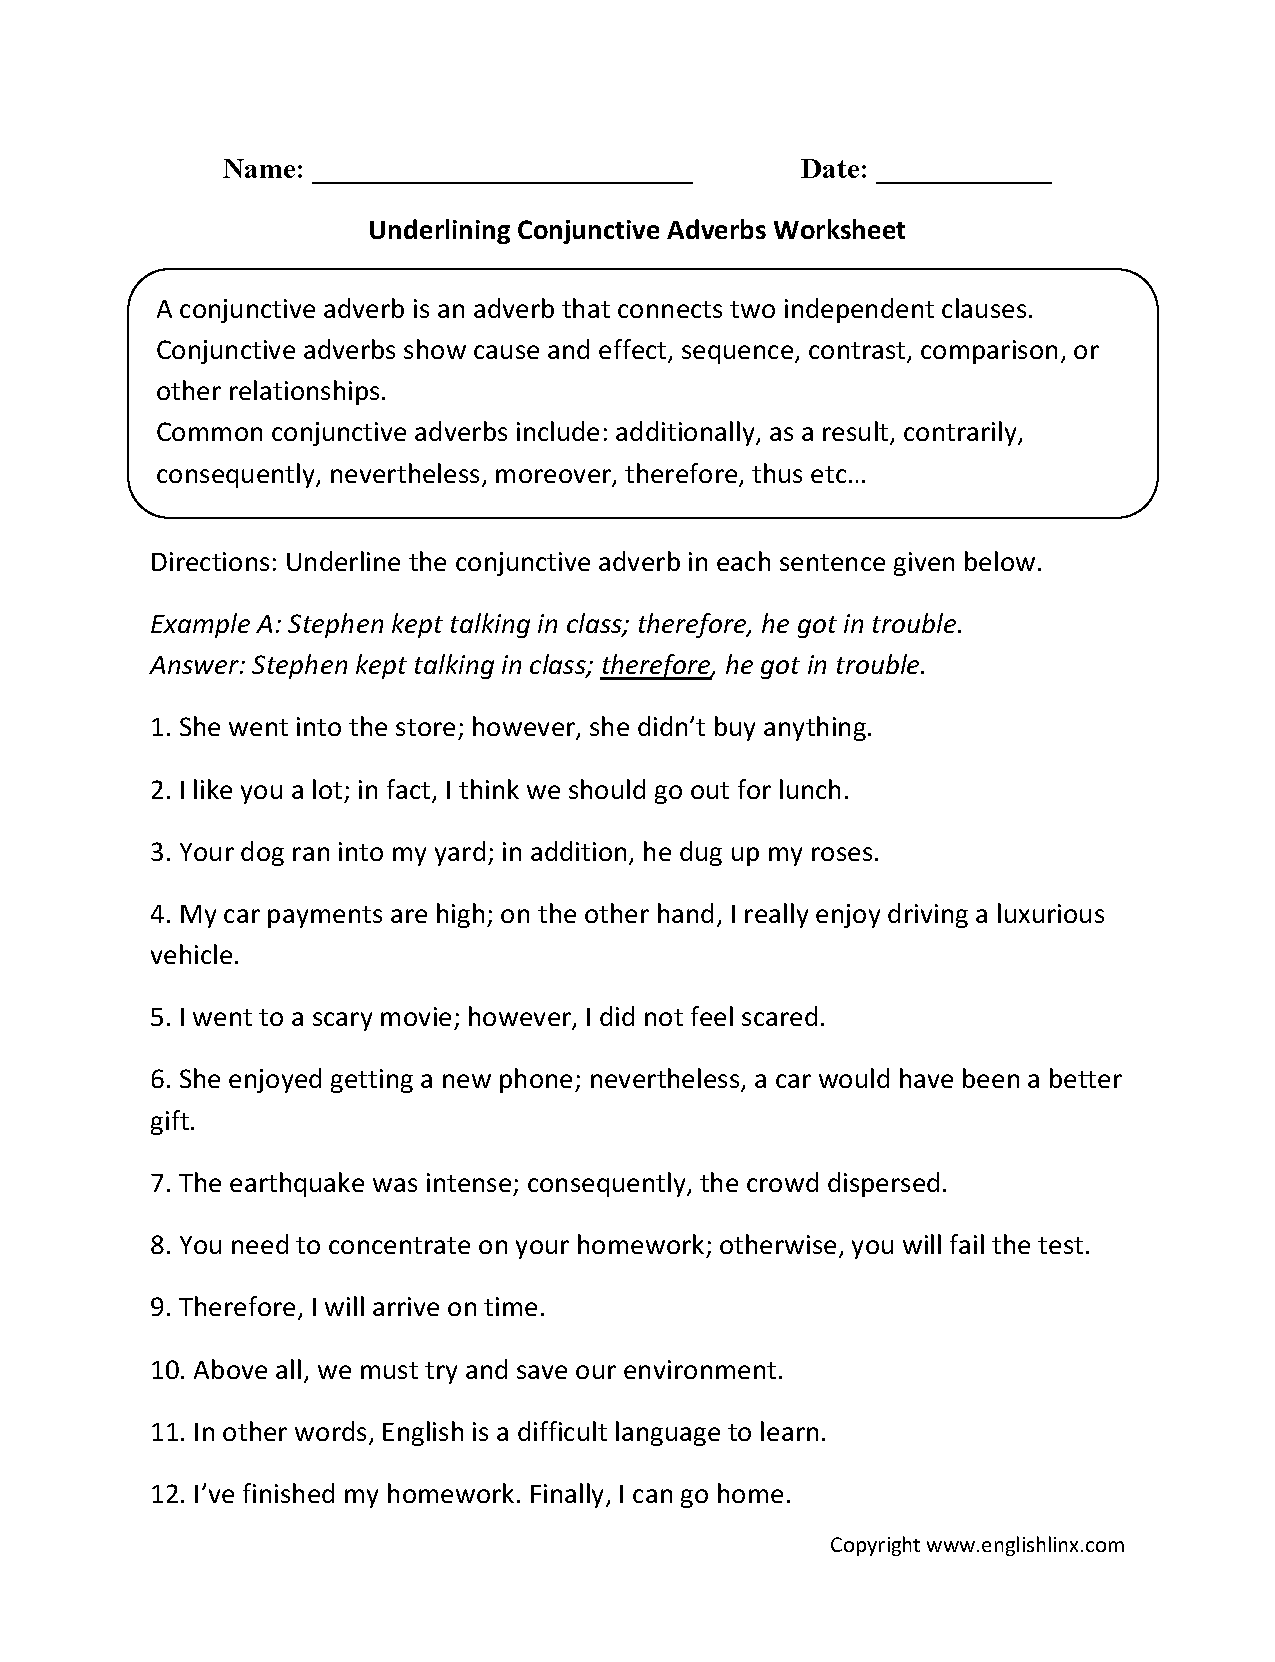 Weirdmailus  Seductive Englishlinxcom  Conjunctions Worksheets With Lovable Worksheet With Adorable Metric To Metric Conversion Worksheet Also Point Of View Worksheets Nd Grade In Addition Text To Text Connections Worksheet And News  You Worksheets As Well As Math Worksheets For Multiplication Additionally Multiplying Fractions Worksheets Th Grade From Englishlinxcom With Weirdmailus  Lovable Englishlinxcom  Conjunctions Worksheets With Adorable Worksheet And Seductive Metric To Metric Conversion Worksheet Also Point Of View Worksheets Nd Grade In Addition Text To Text Connections Worksheet From Englishlinxcom